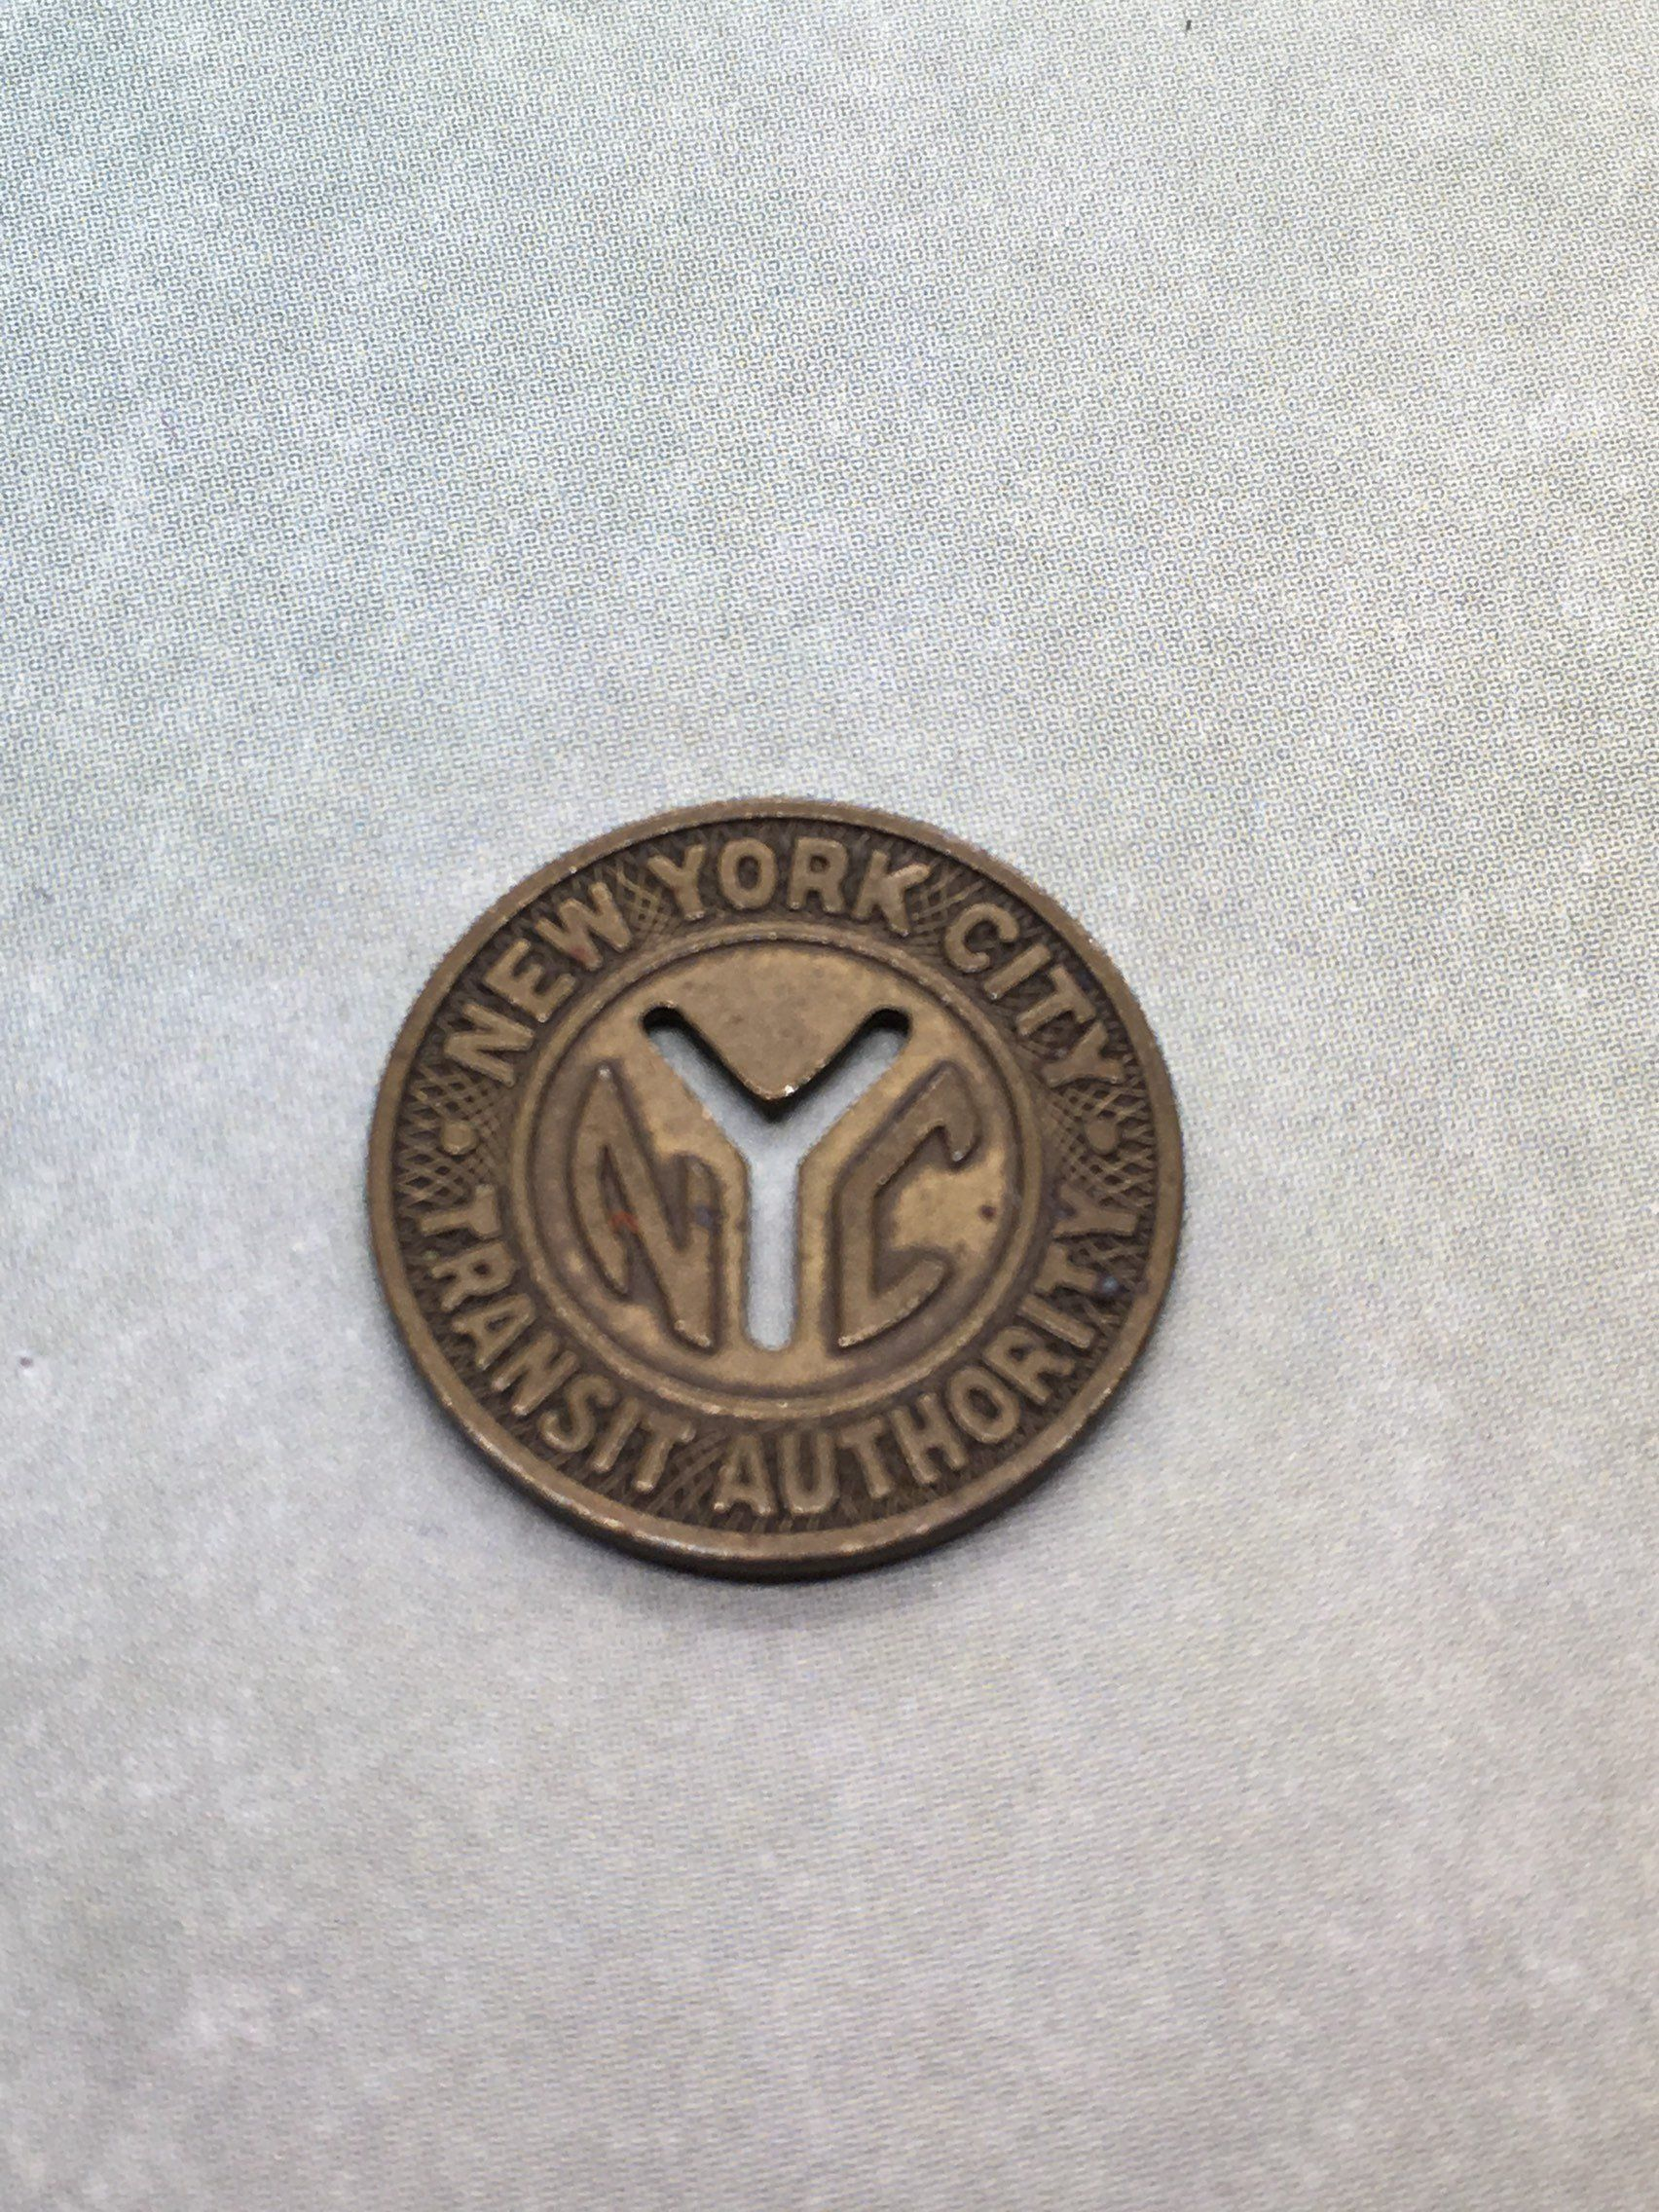 Nyc Subway Token 1950s New York City Transit Authority Good For One Fare By Oldtimesnsuch On Etsy Subway Token Nyc Subway New York Subway